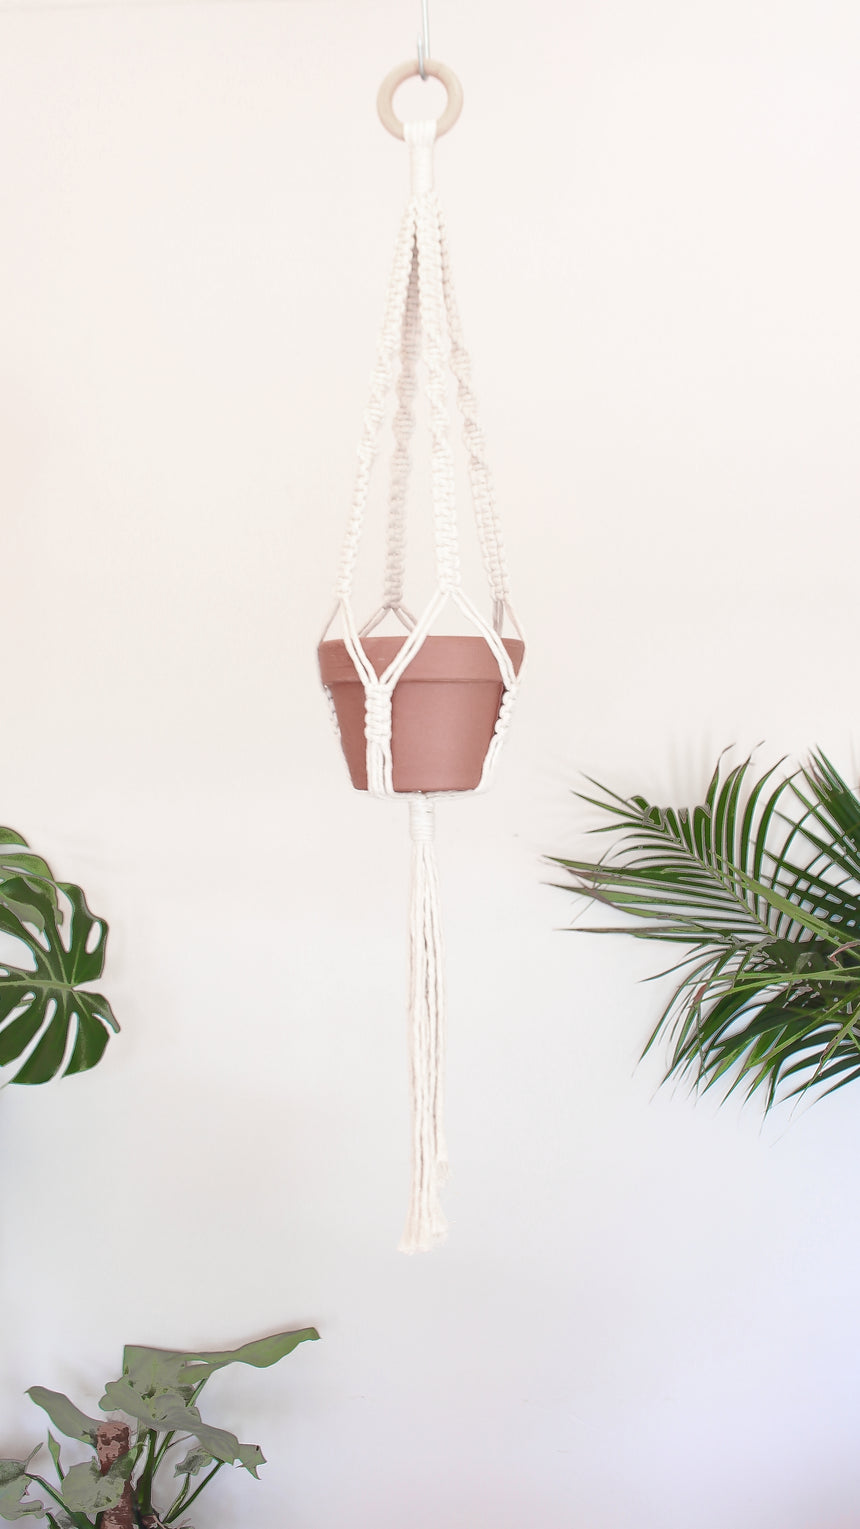 Macrame pot holder - classic